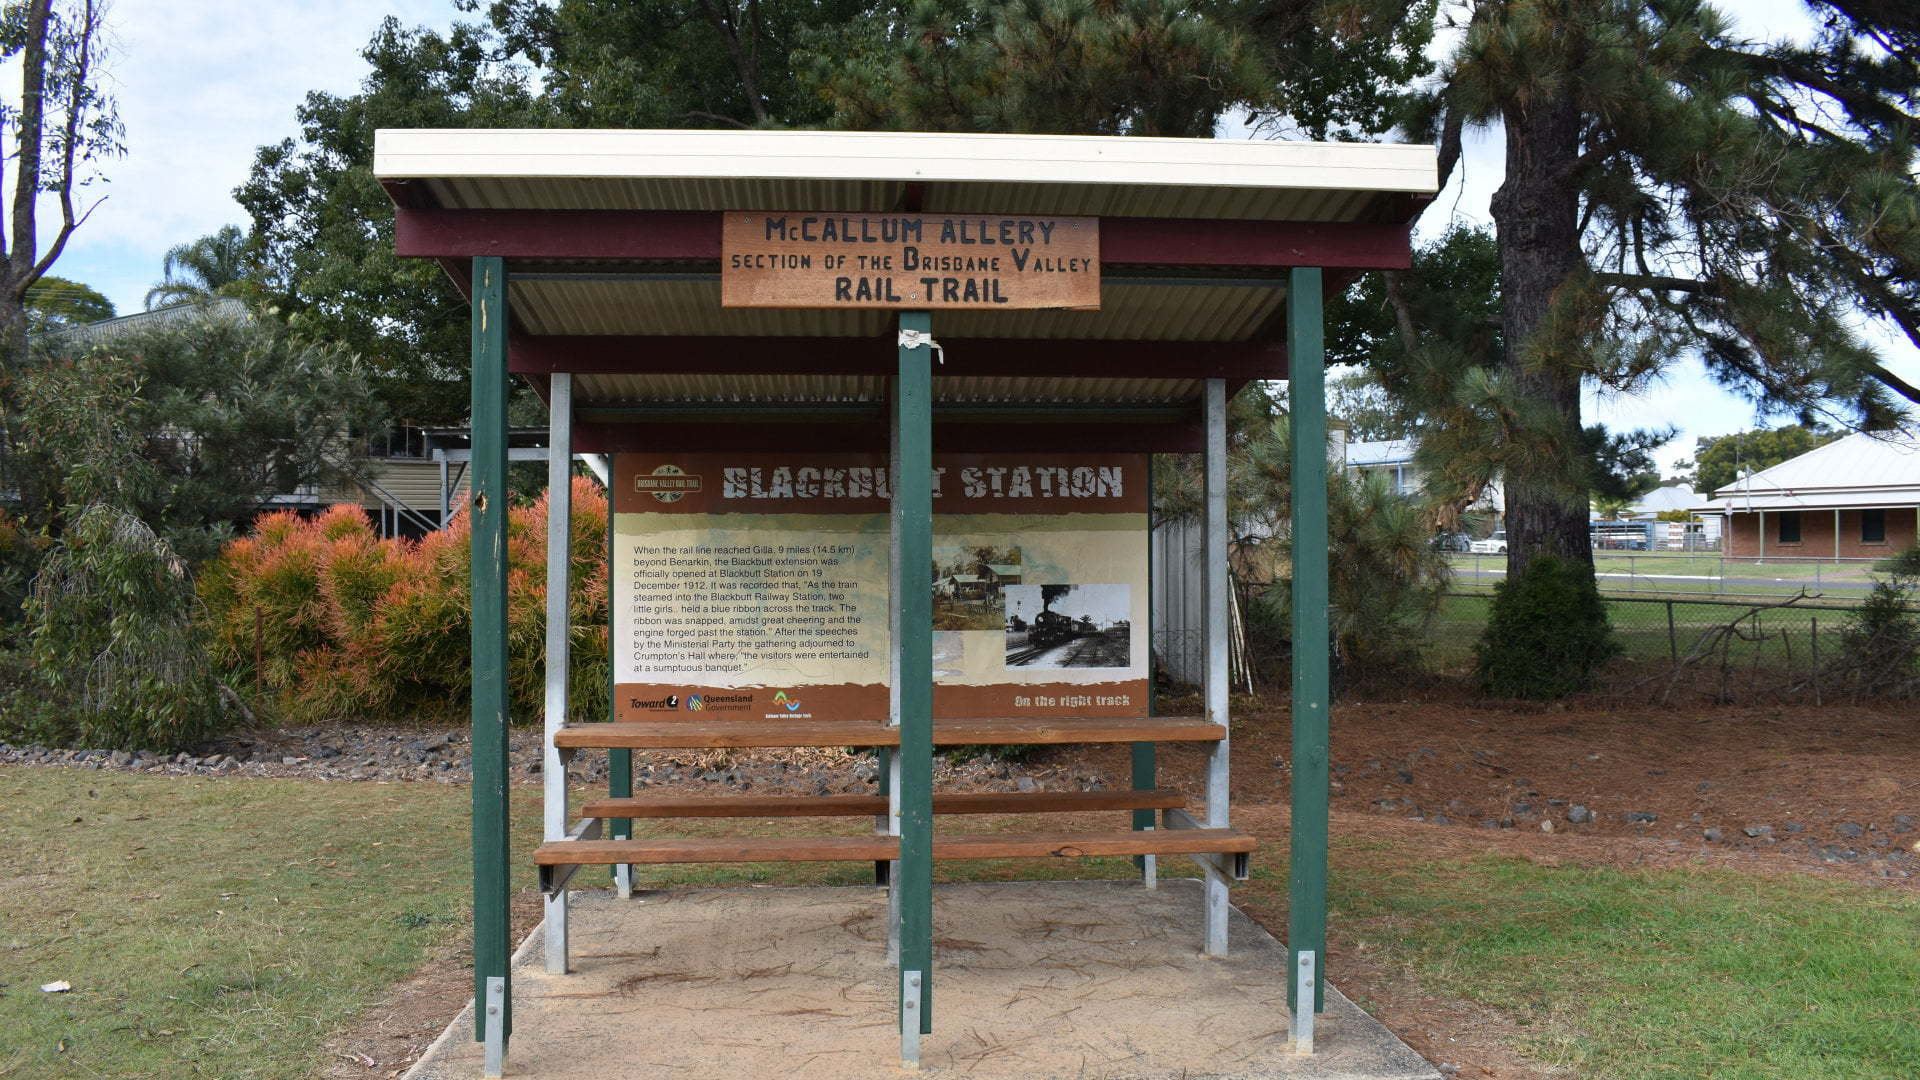 Picnic table shelter for the Rail Trail in Blackbutt, along the Brisbane Valley Rail Trail. The rail trail is a shared-use path (walking, biking, and horse riding) on an abandoned railway corridor from Ipswich to Yarraman.